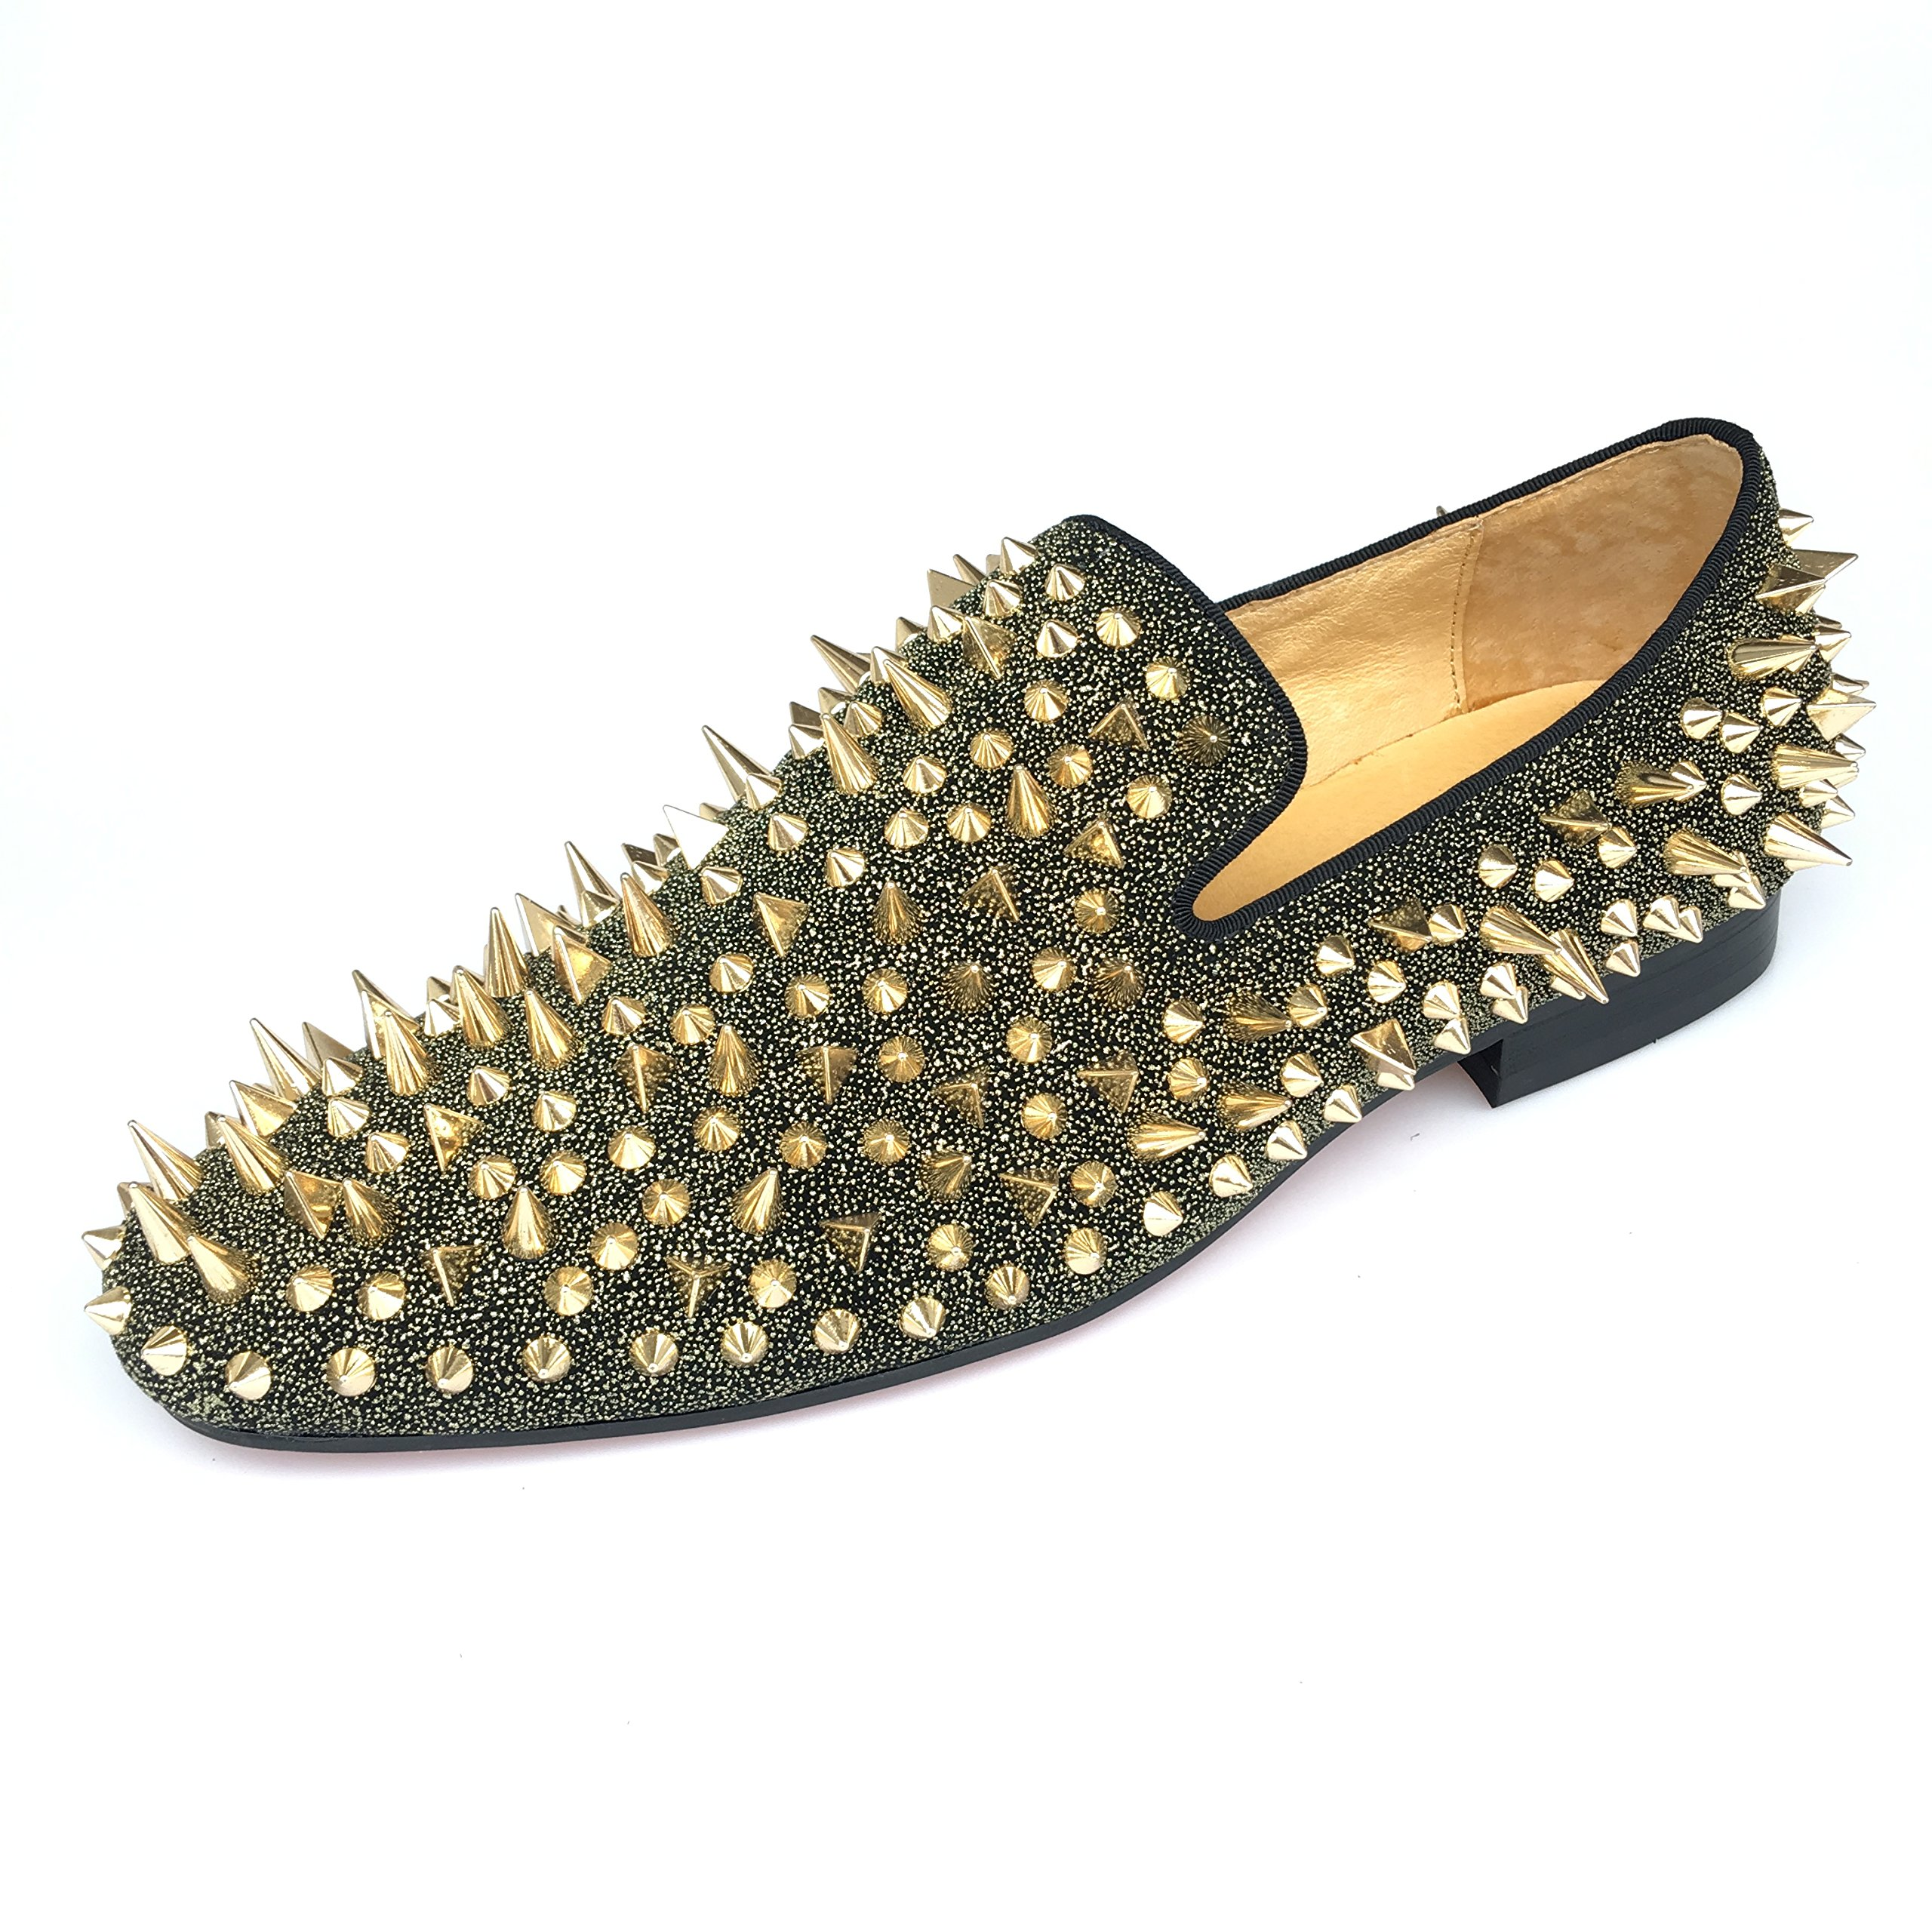 Men's Loafer Shoes Leather Slippers Flats With Gold Spikes and Red Bottom Slip-On Dress Shoes New (10, Gold)